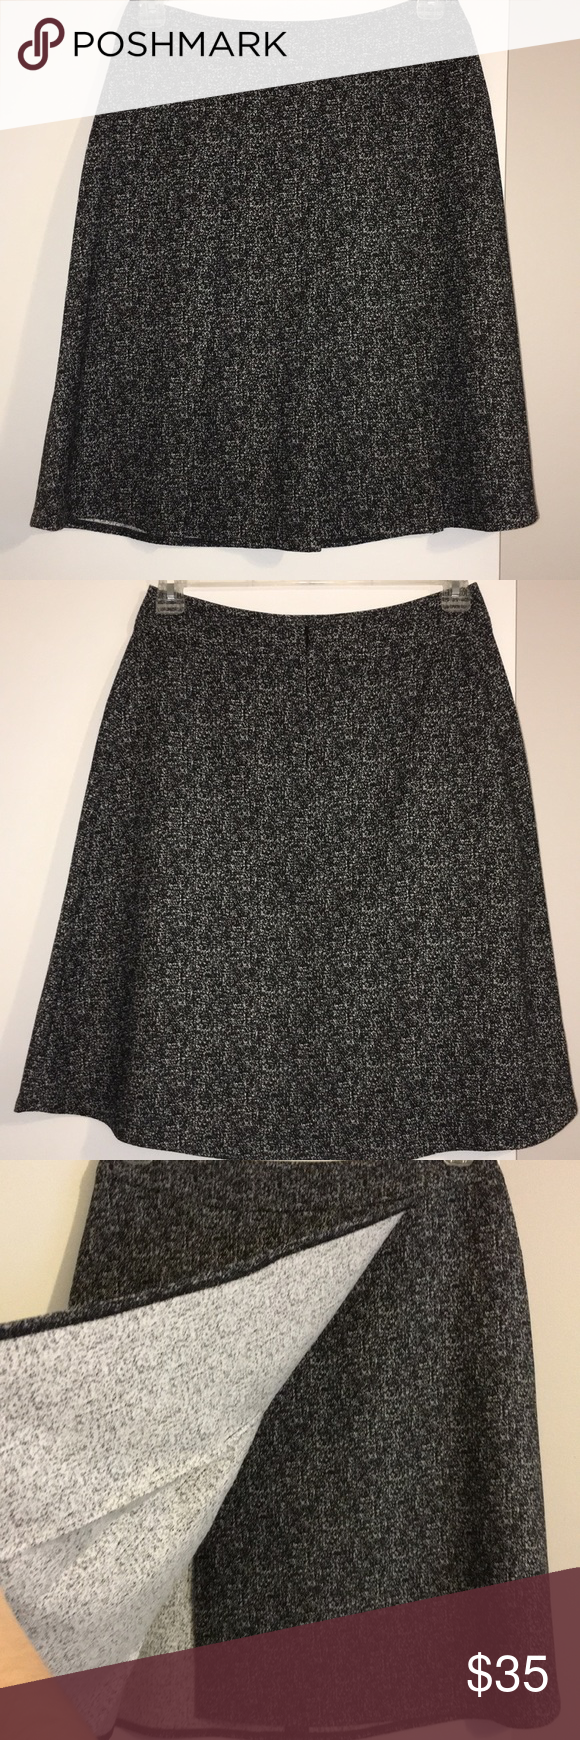 e1a740c0cf0e84 The Limited Faux Wrap Skirt Beautiful black and white tweed looking faux wrap  skirt. Has three pleats in the front and zips in the back.